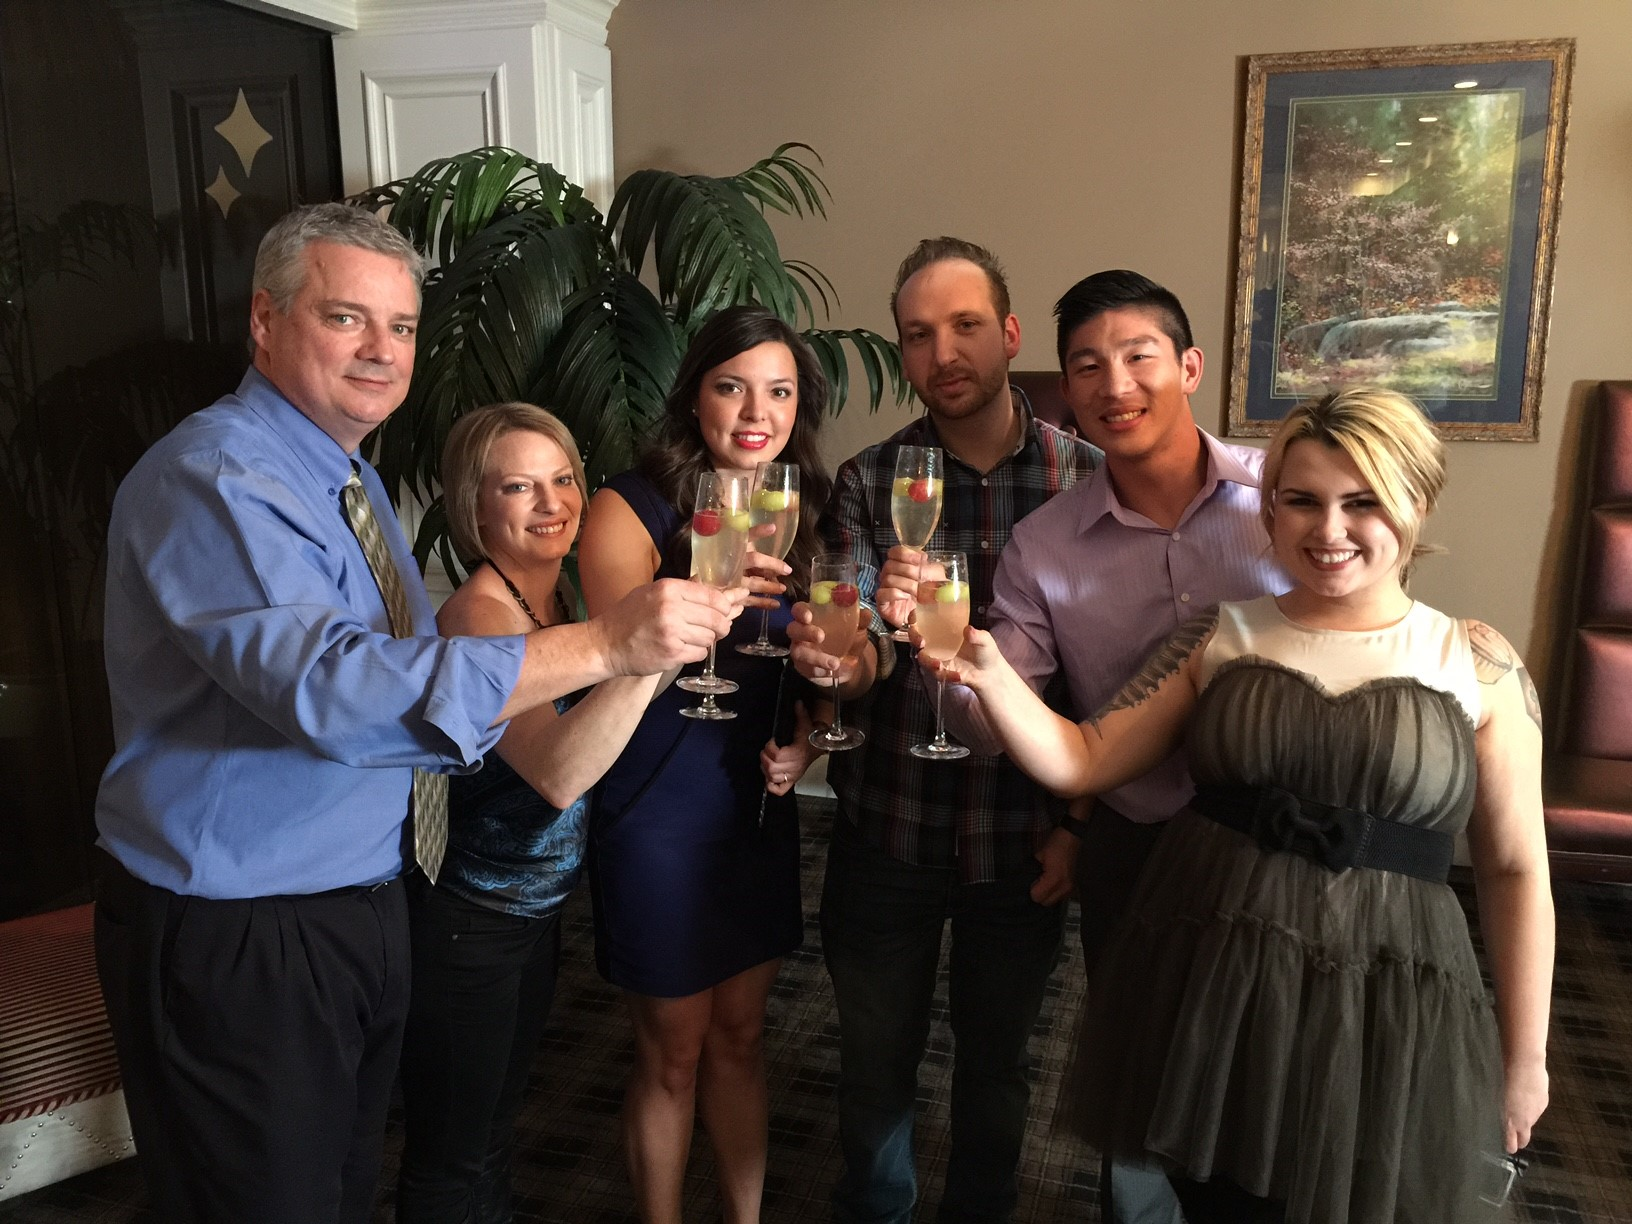 The Expedia.ca Sinternship contest group had a marvellous time in Las Vegas. The winning contestant was Kayla Gregoire of Timmins, Ontario, third from the left in the blue dress.